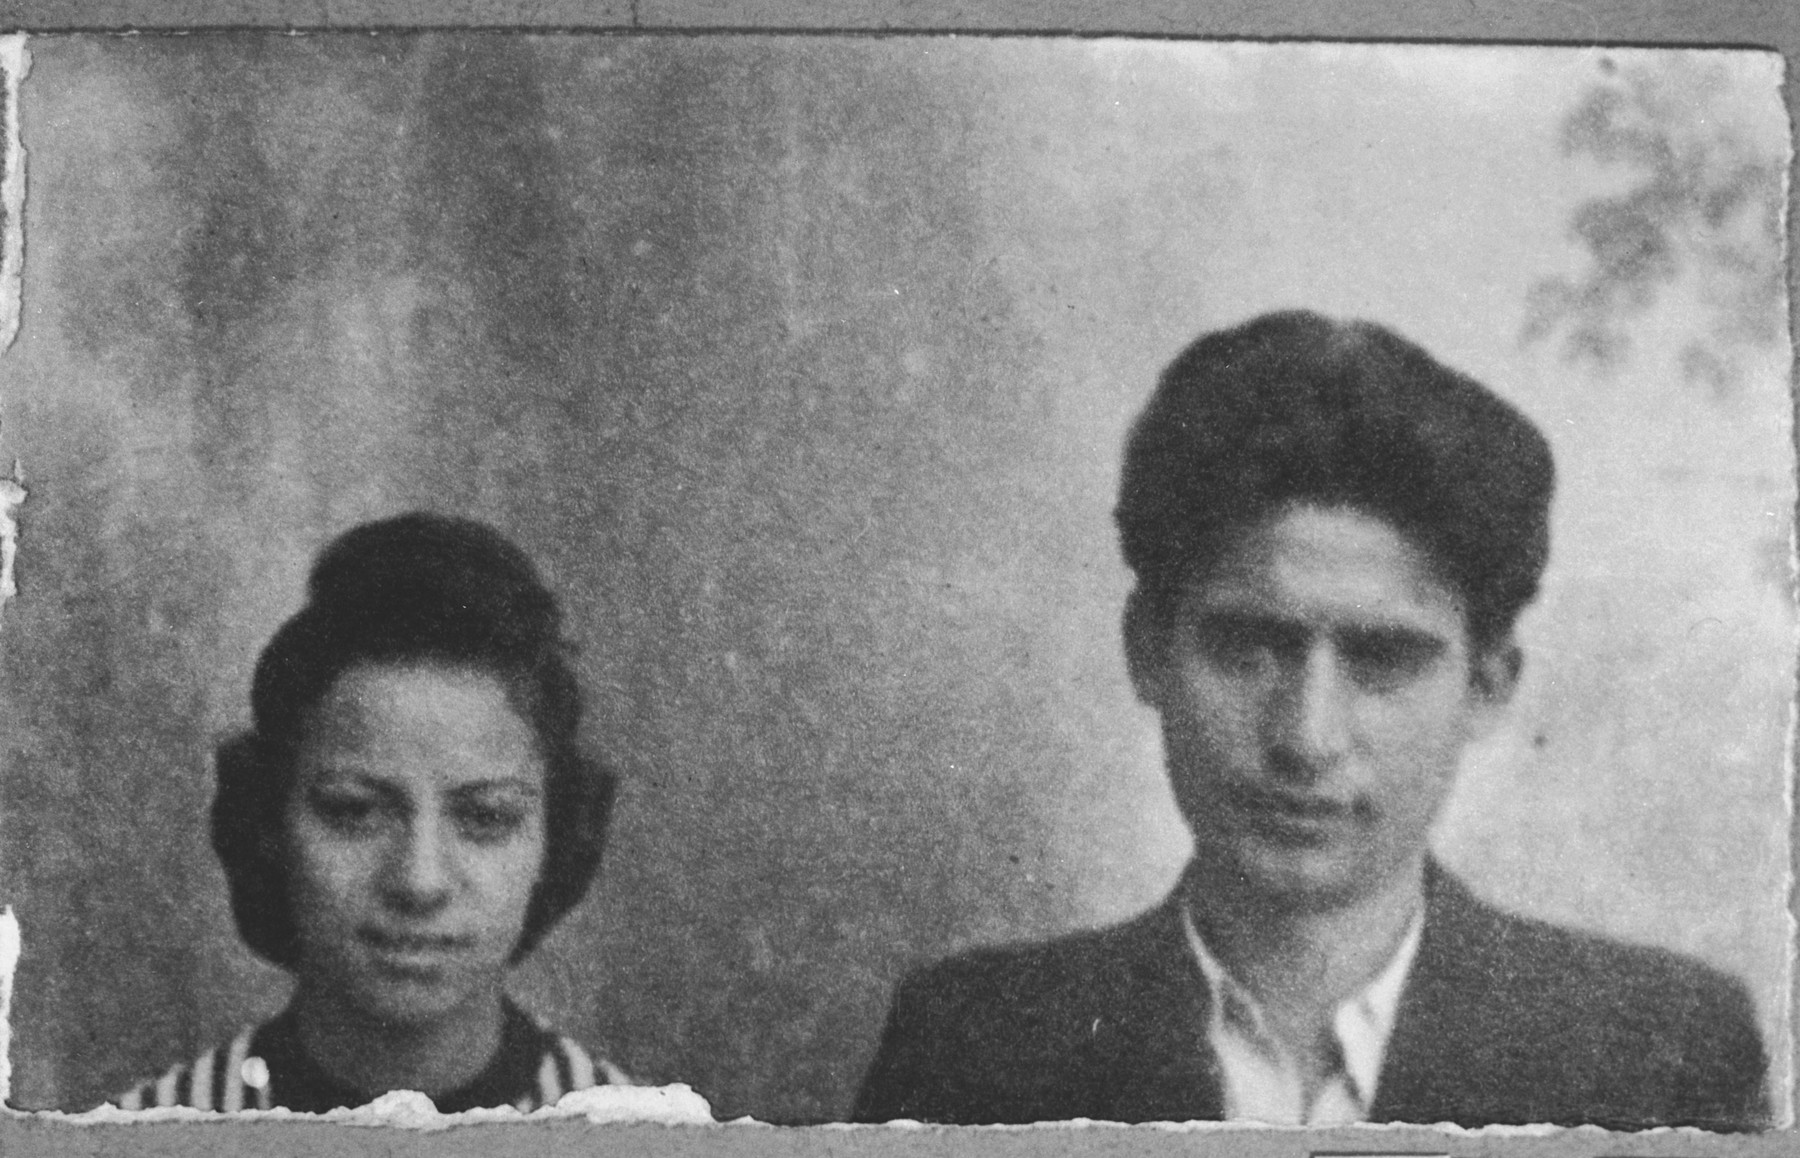 Portrait of Todoros and Louisa Aroesti, son and daughter of Simaja Aroesti.  Todoros was a plumber.  They lived at Zvornitska 5 in Bitola.